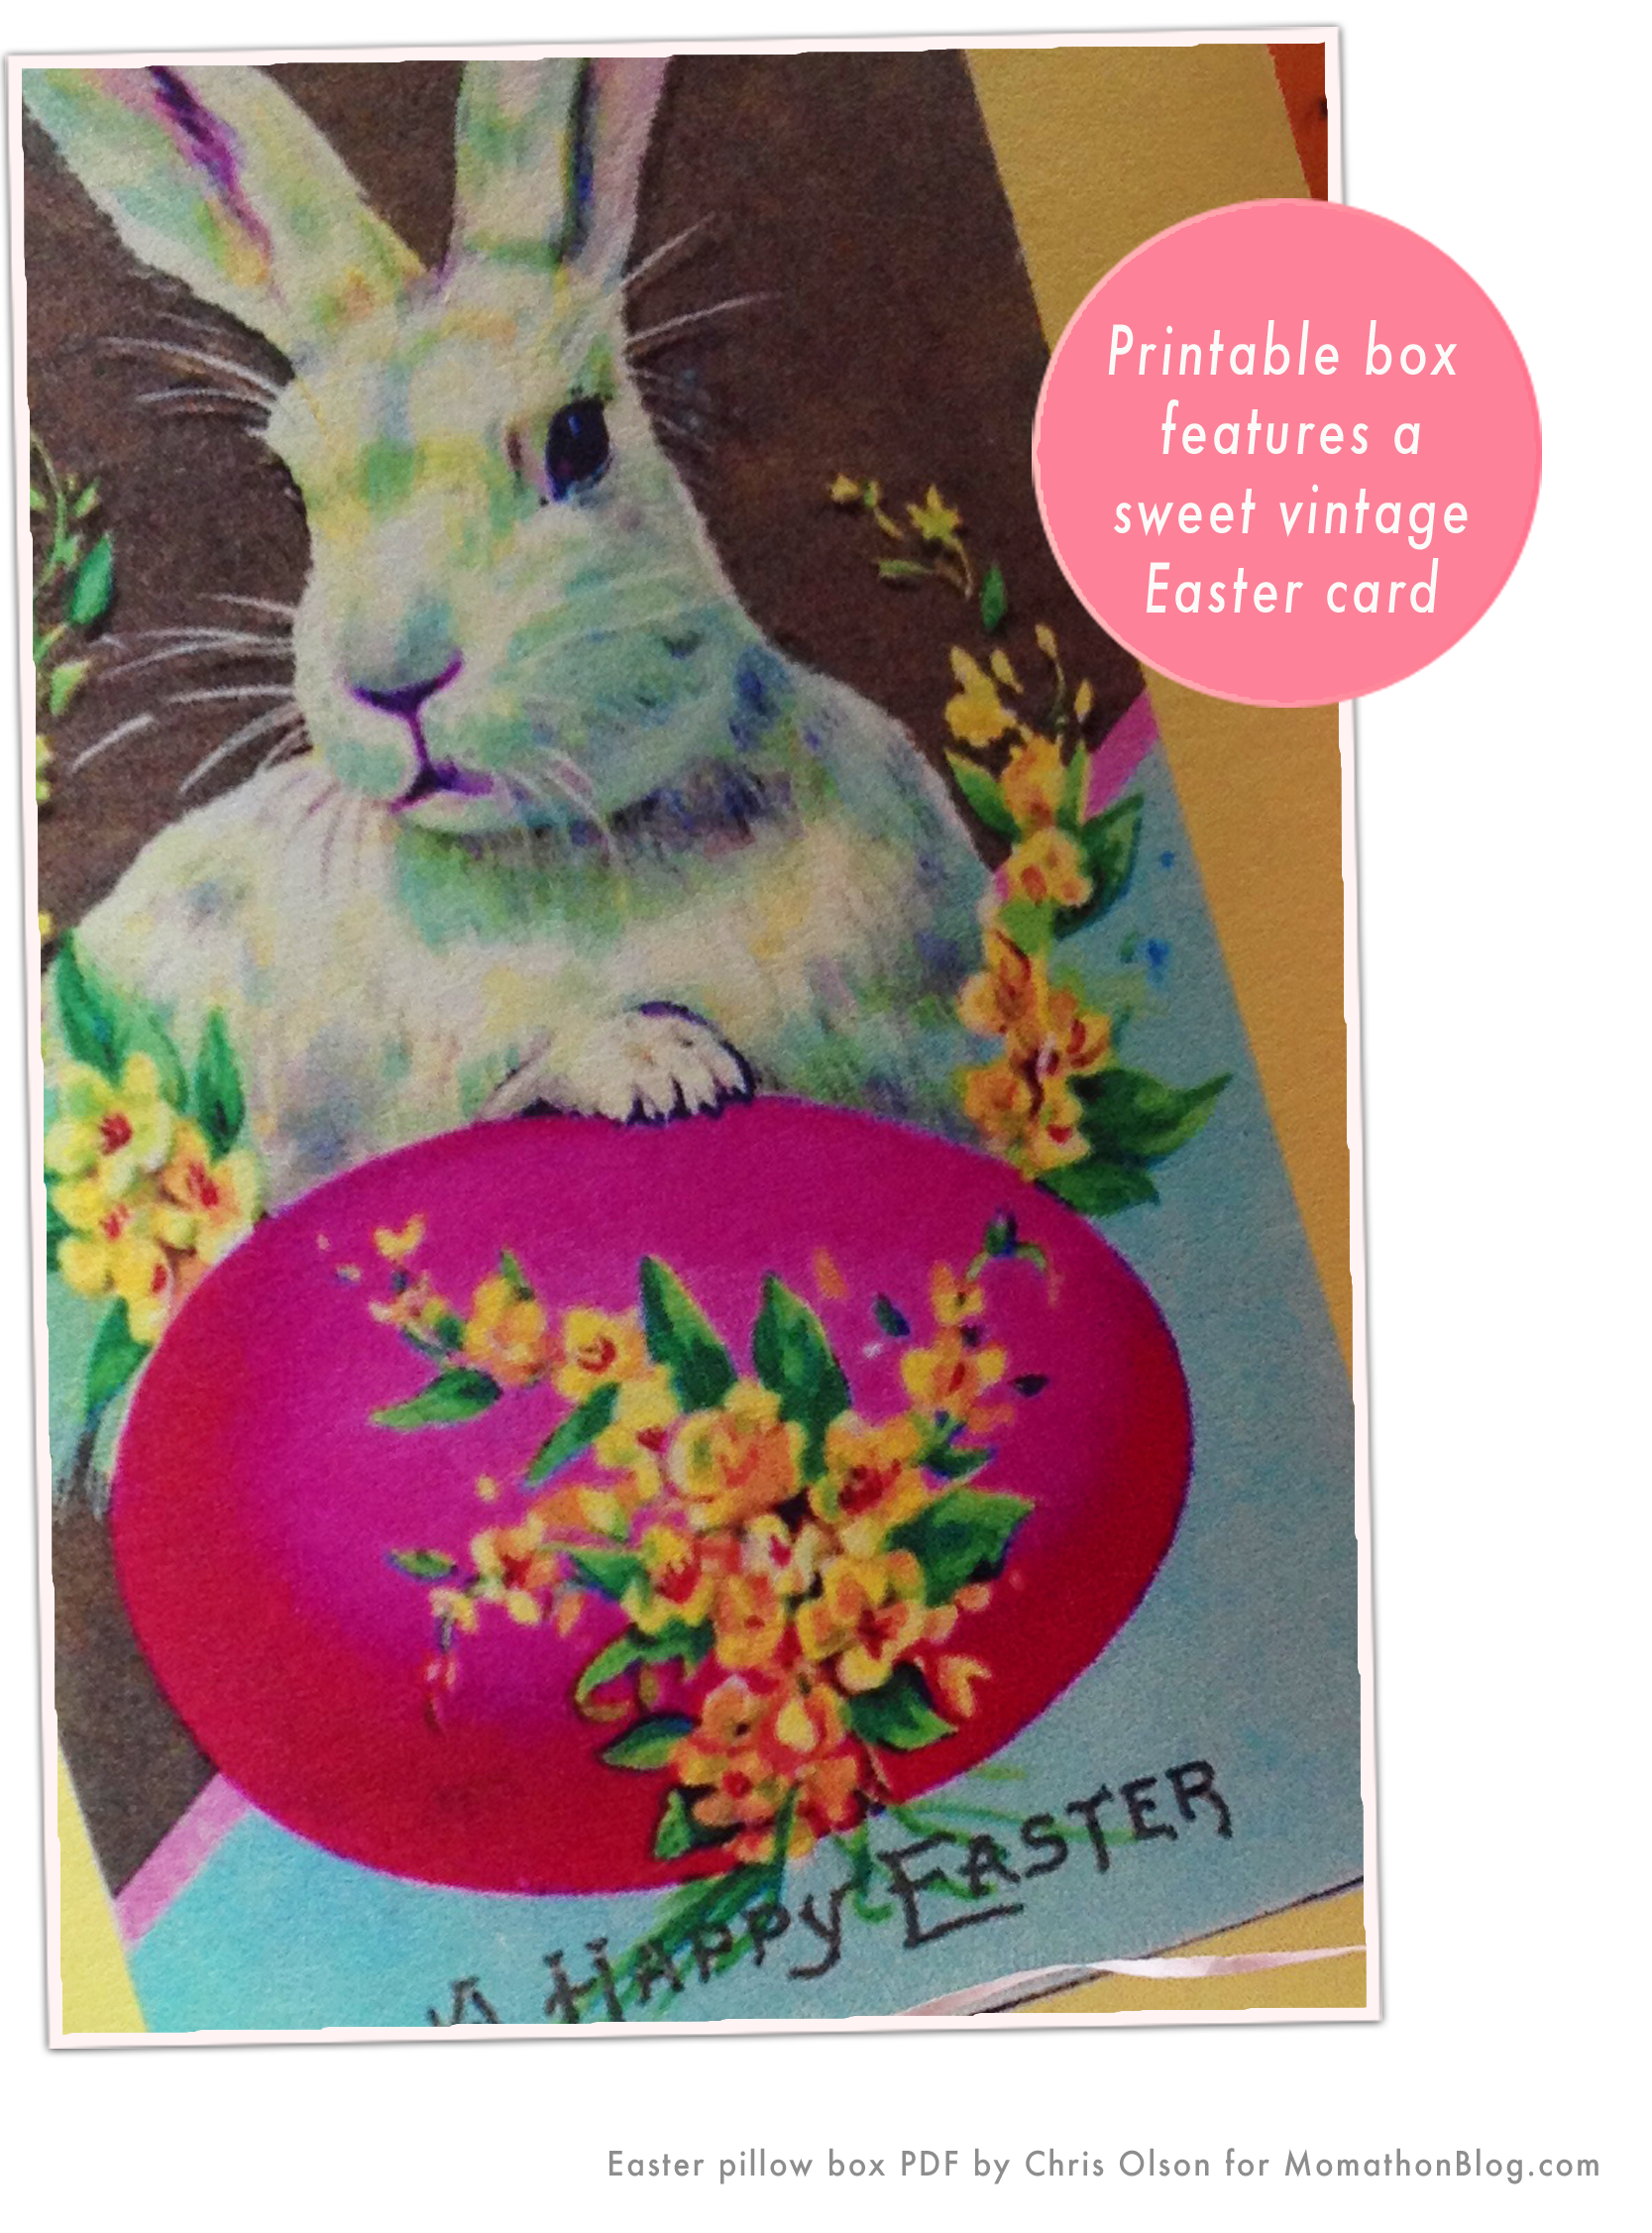 Momathon blog free printable easter bunny gift box you can also embellish the box with glitter after i printed copies of the boxes at home i added a hint of white glitter to the bunny ears negle Gallery